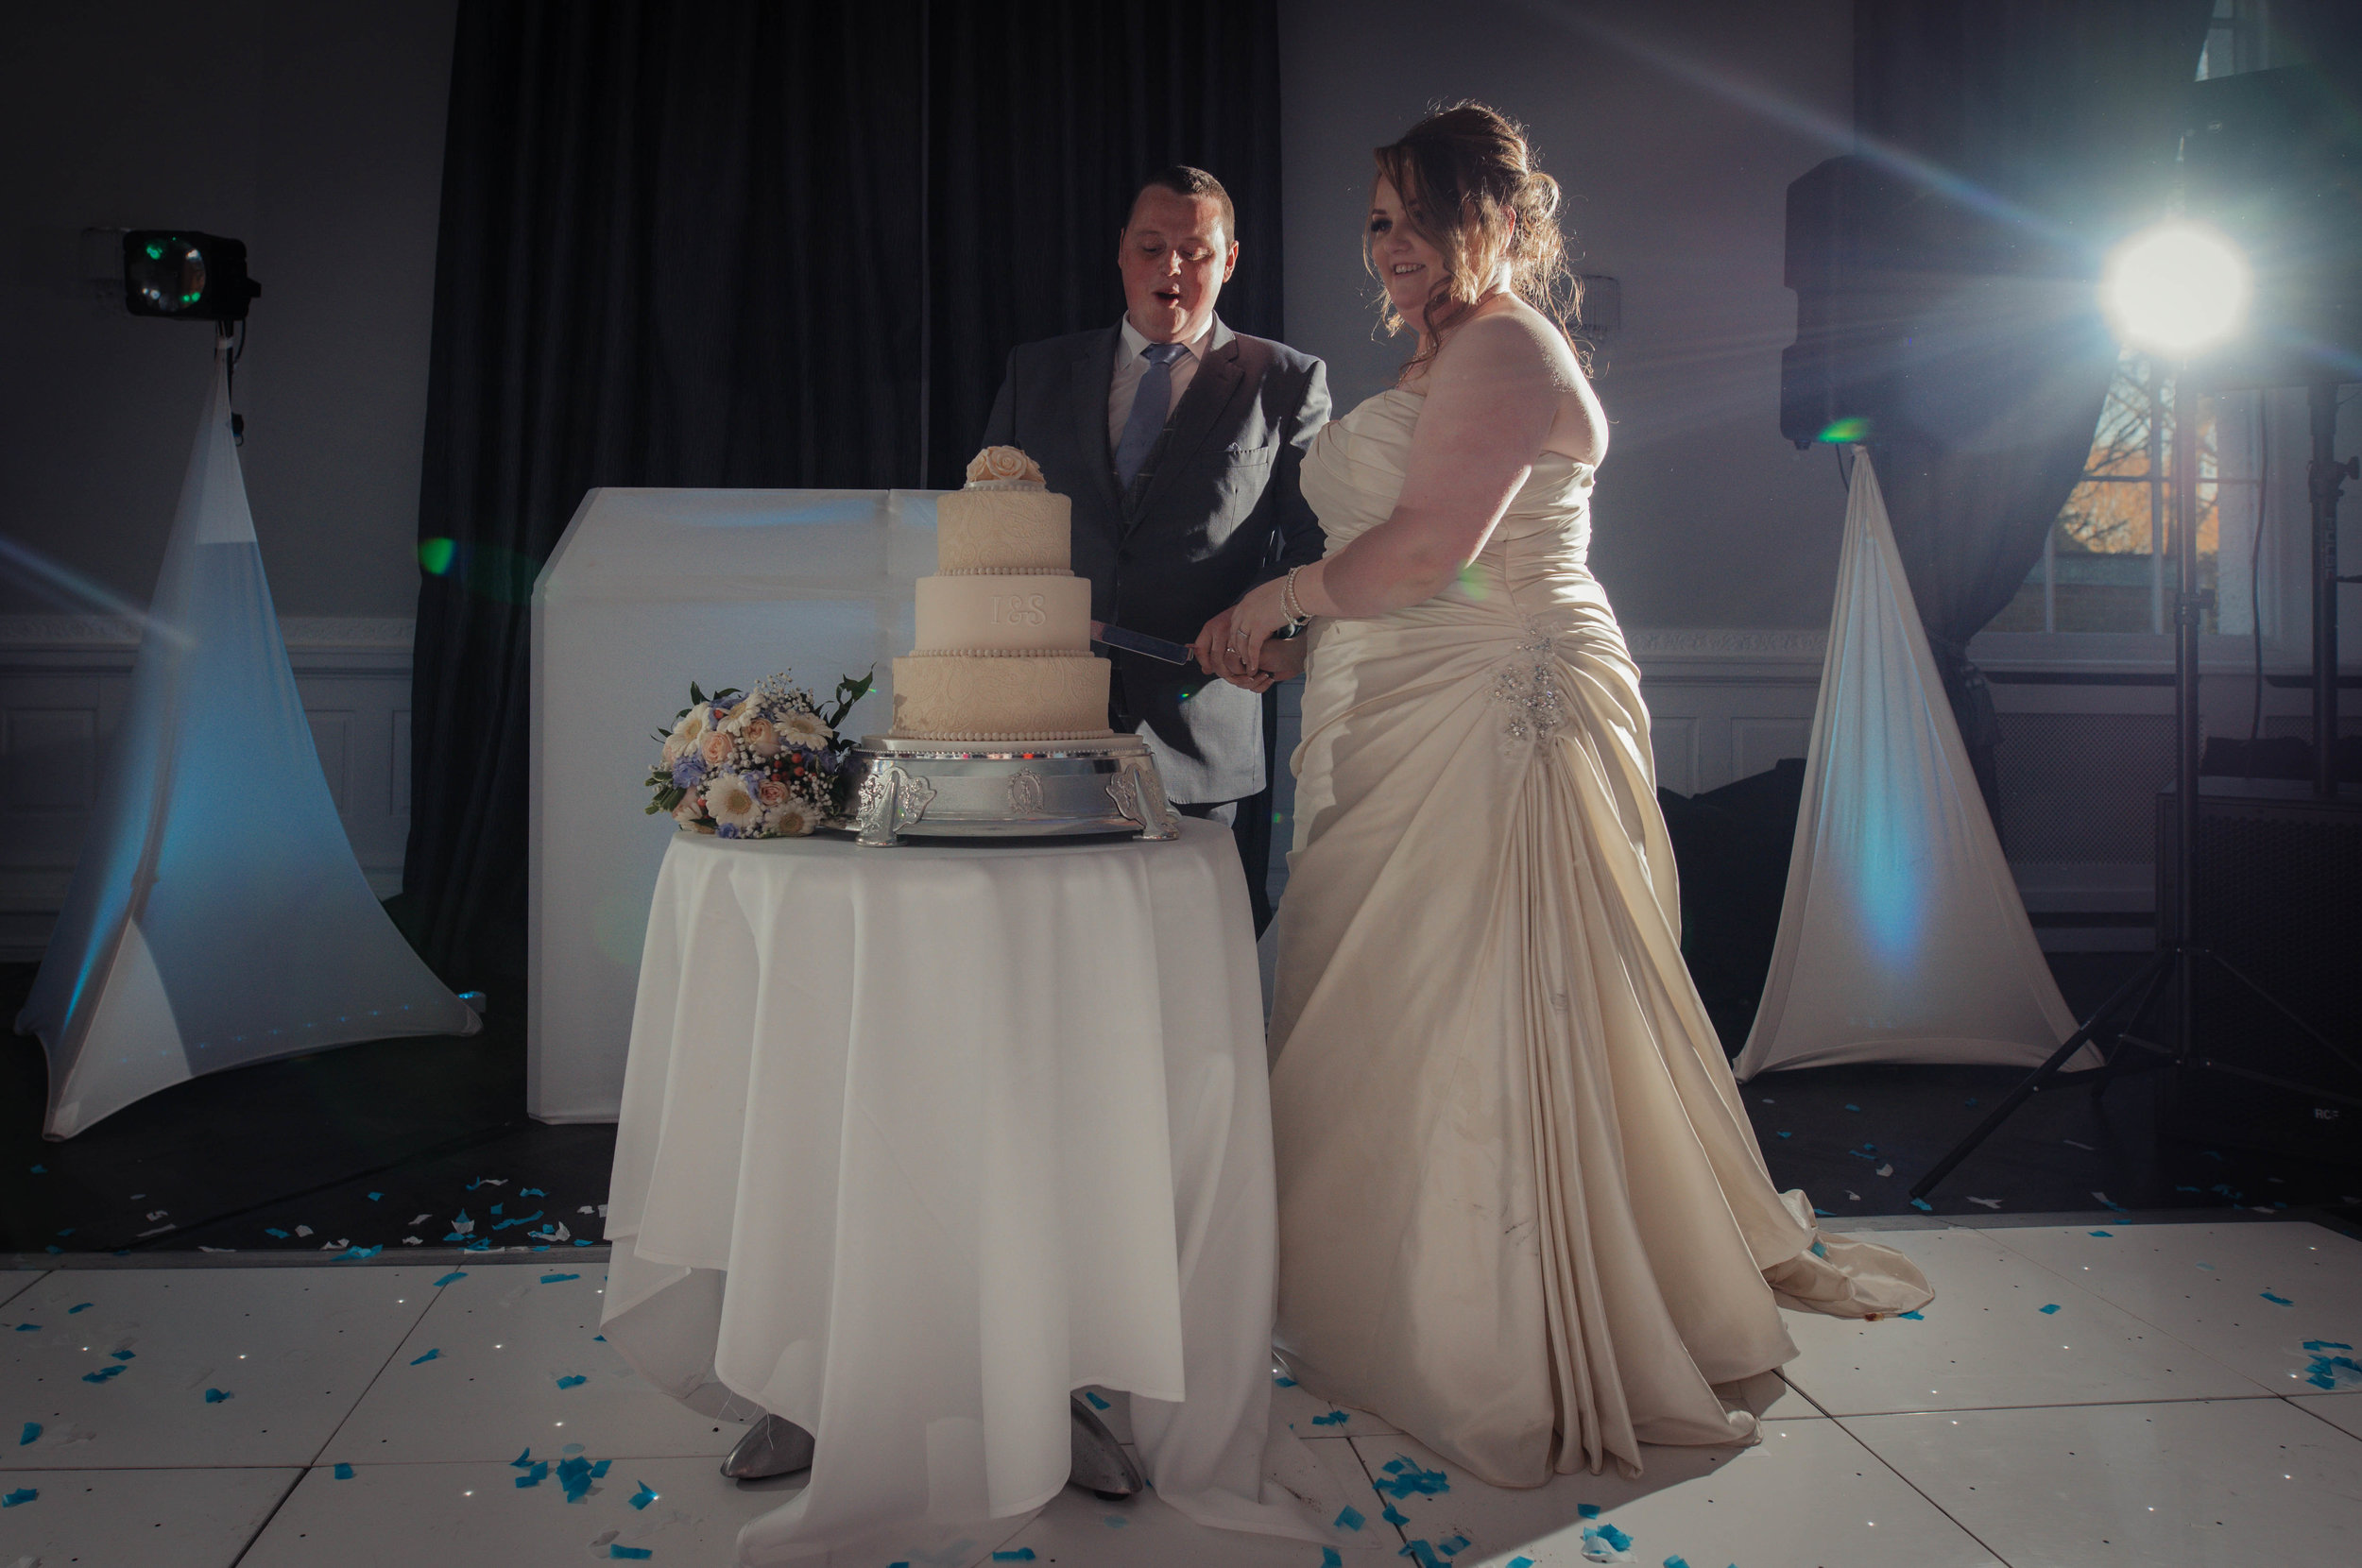 The bride and groom stand to cut their wedding cake together